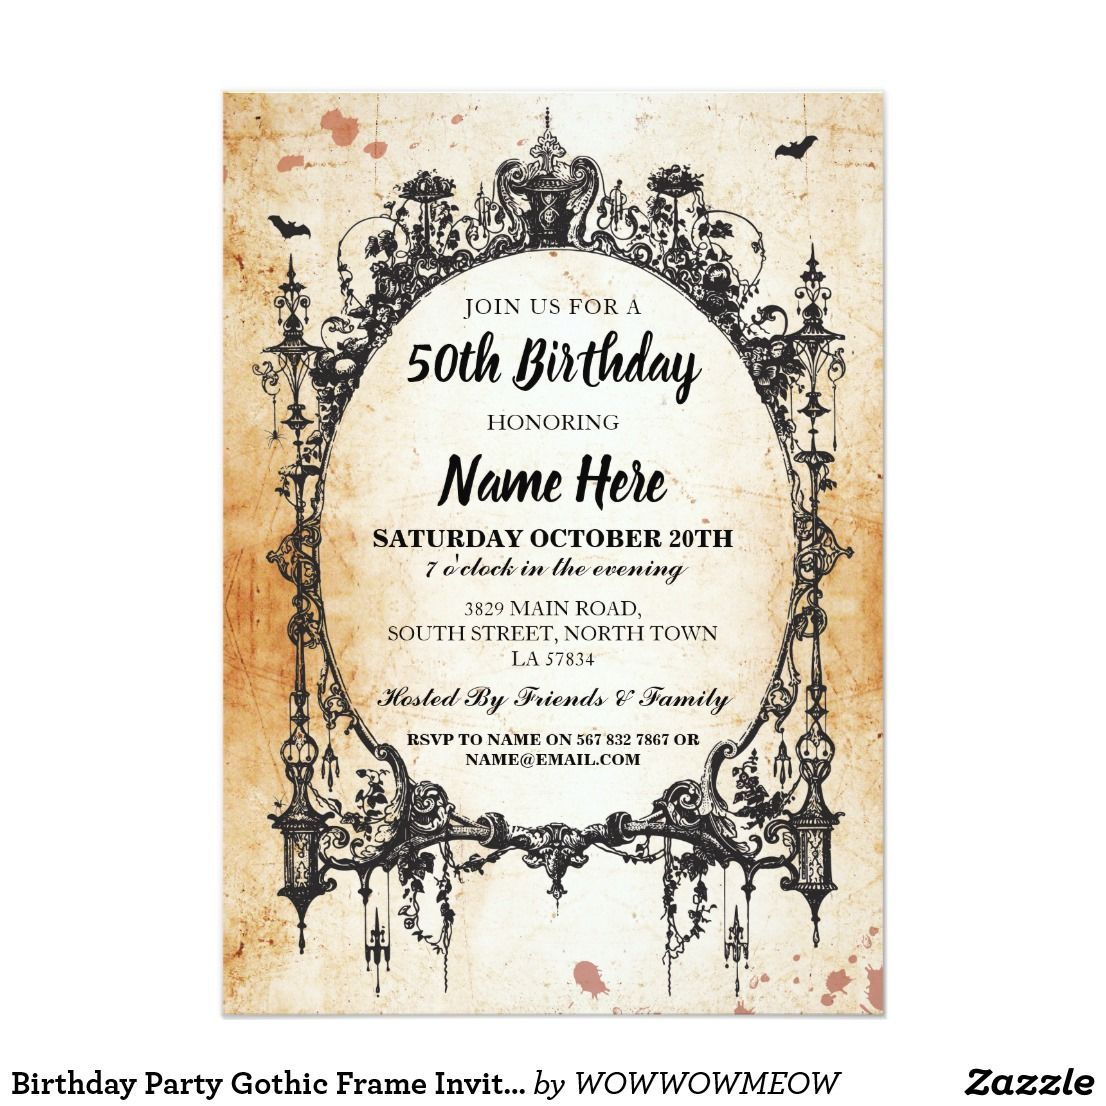 Birthday party gothic frame invite halloween zazzle birthday